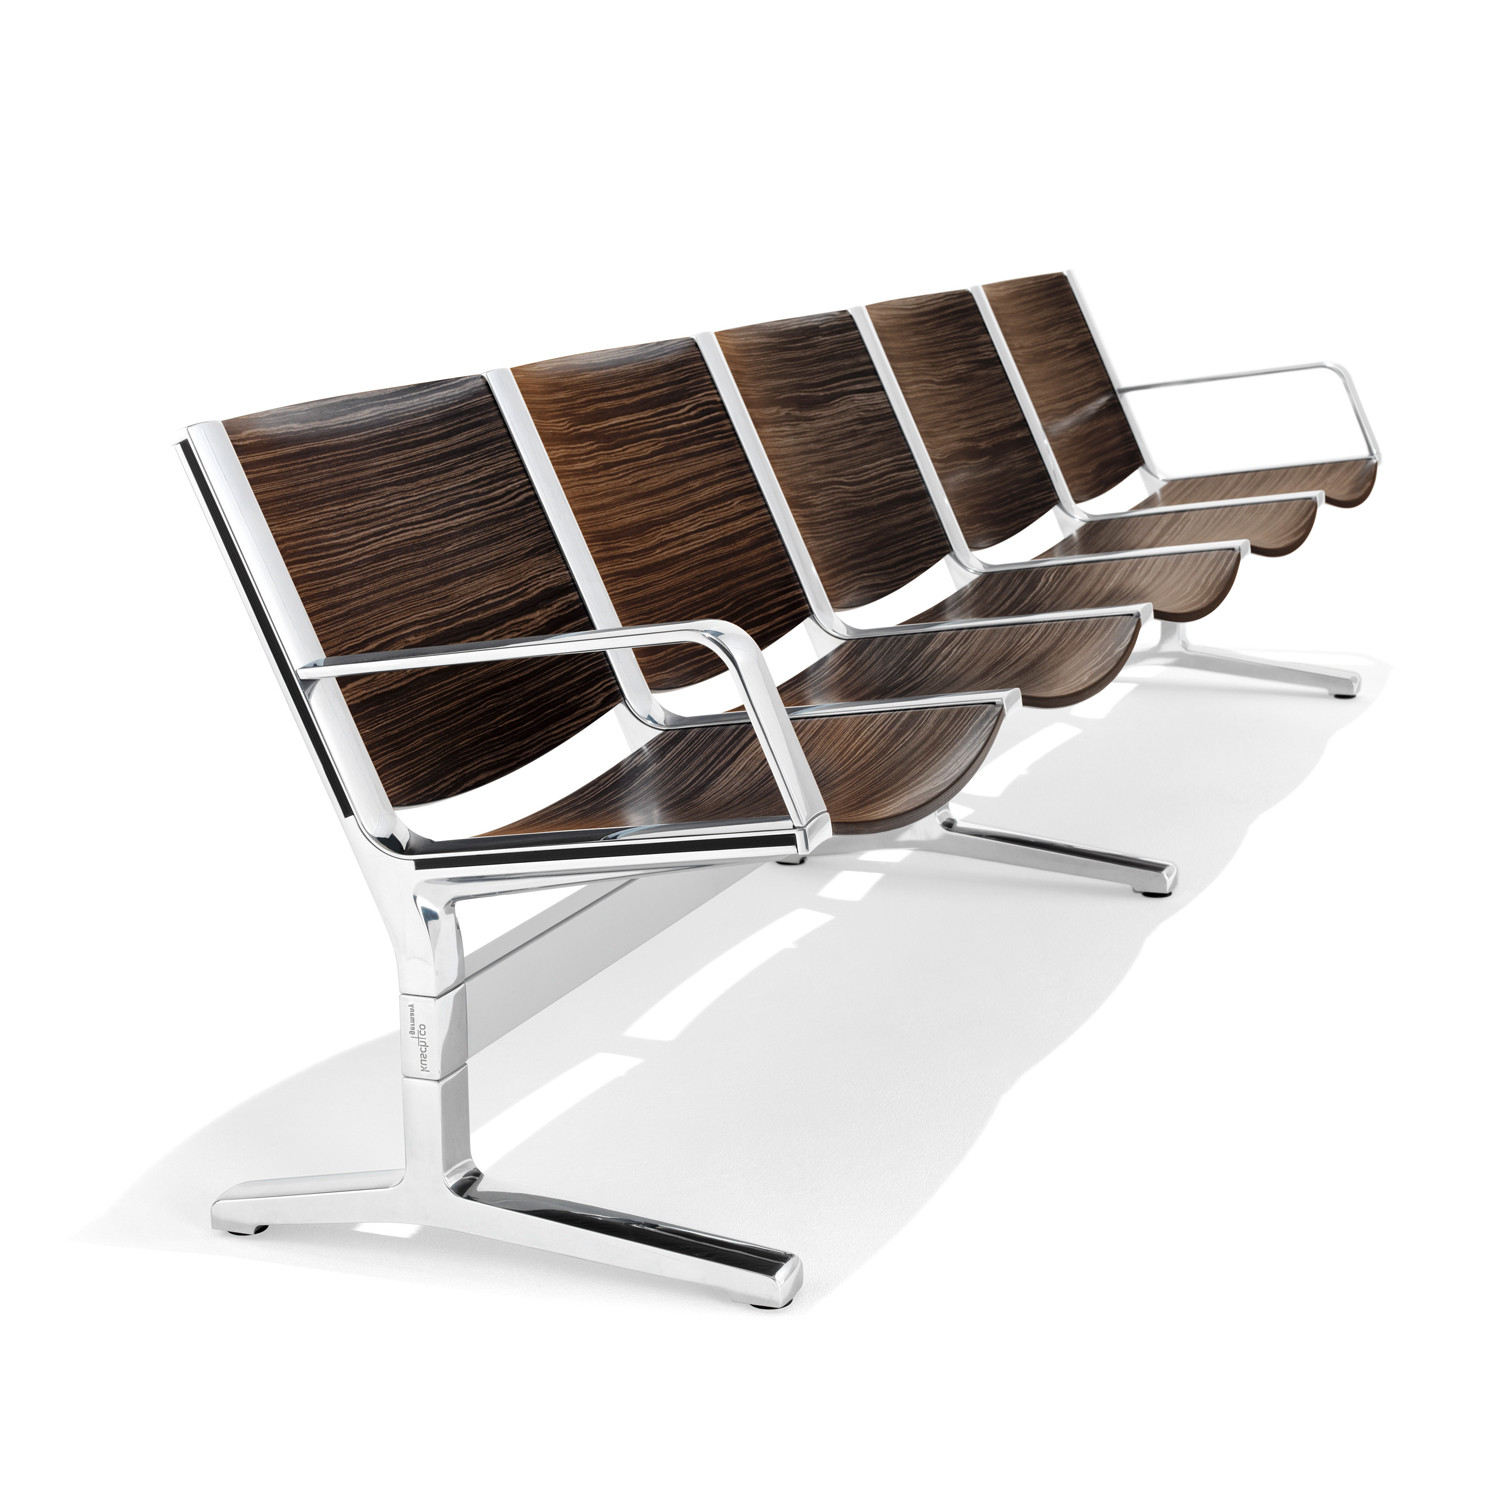 8020 Bench for Waiting Areas